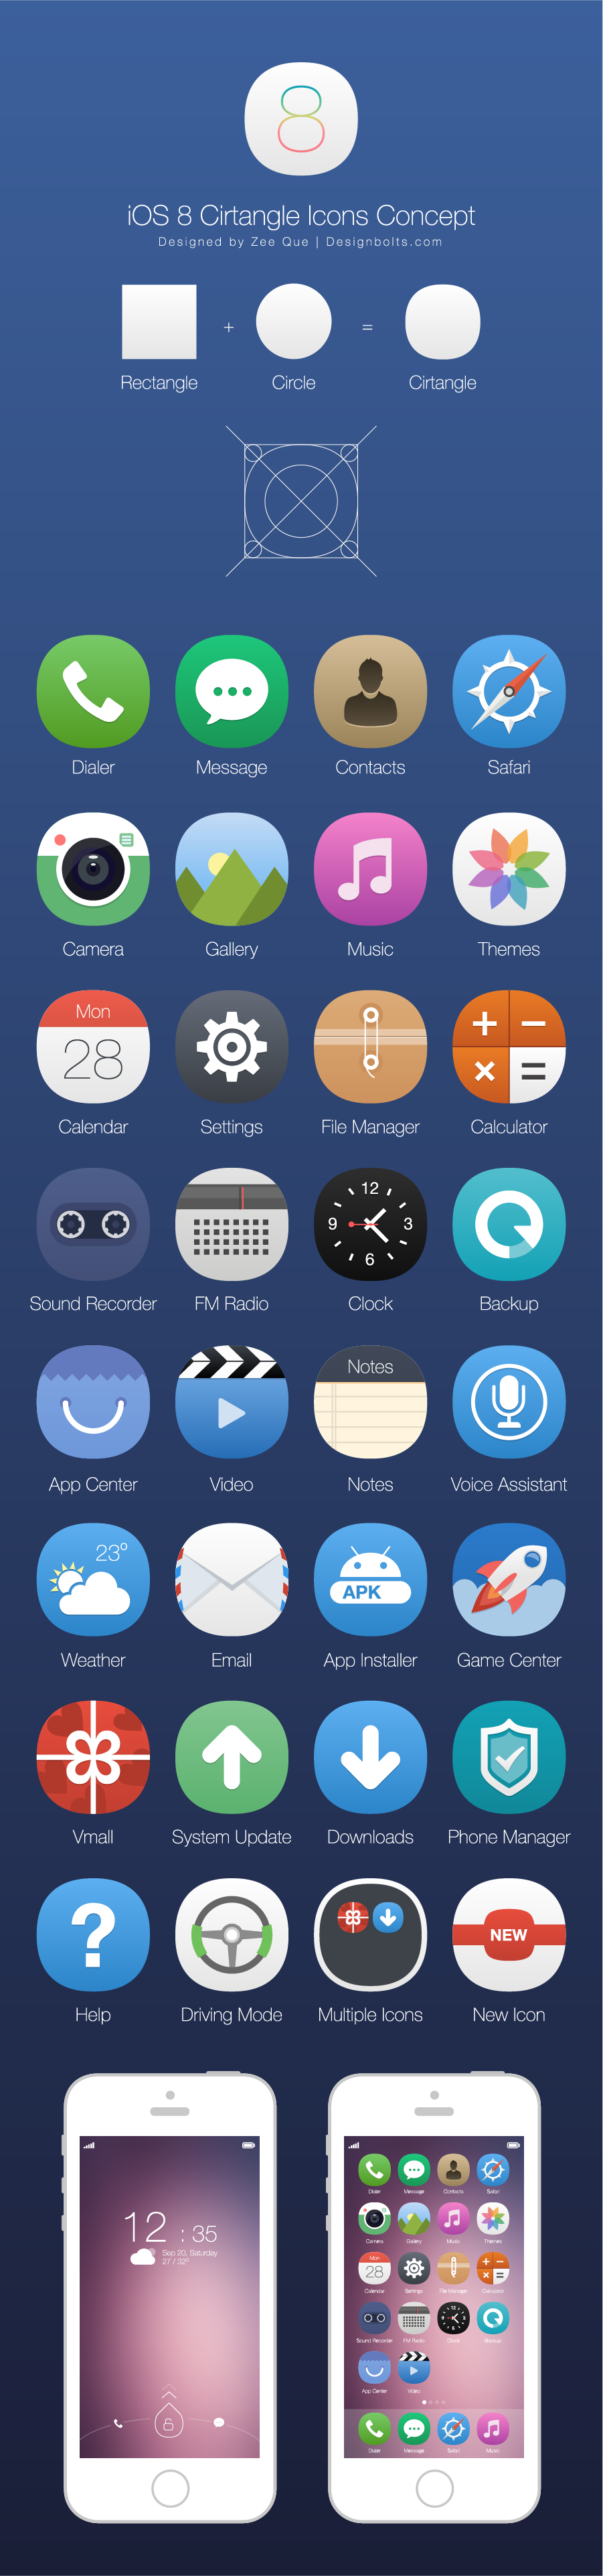 iOS-8-Cirtangle-Icons-Concept-011